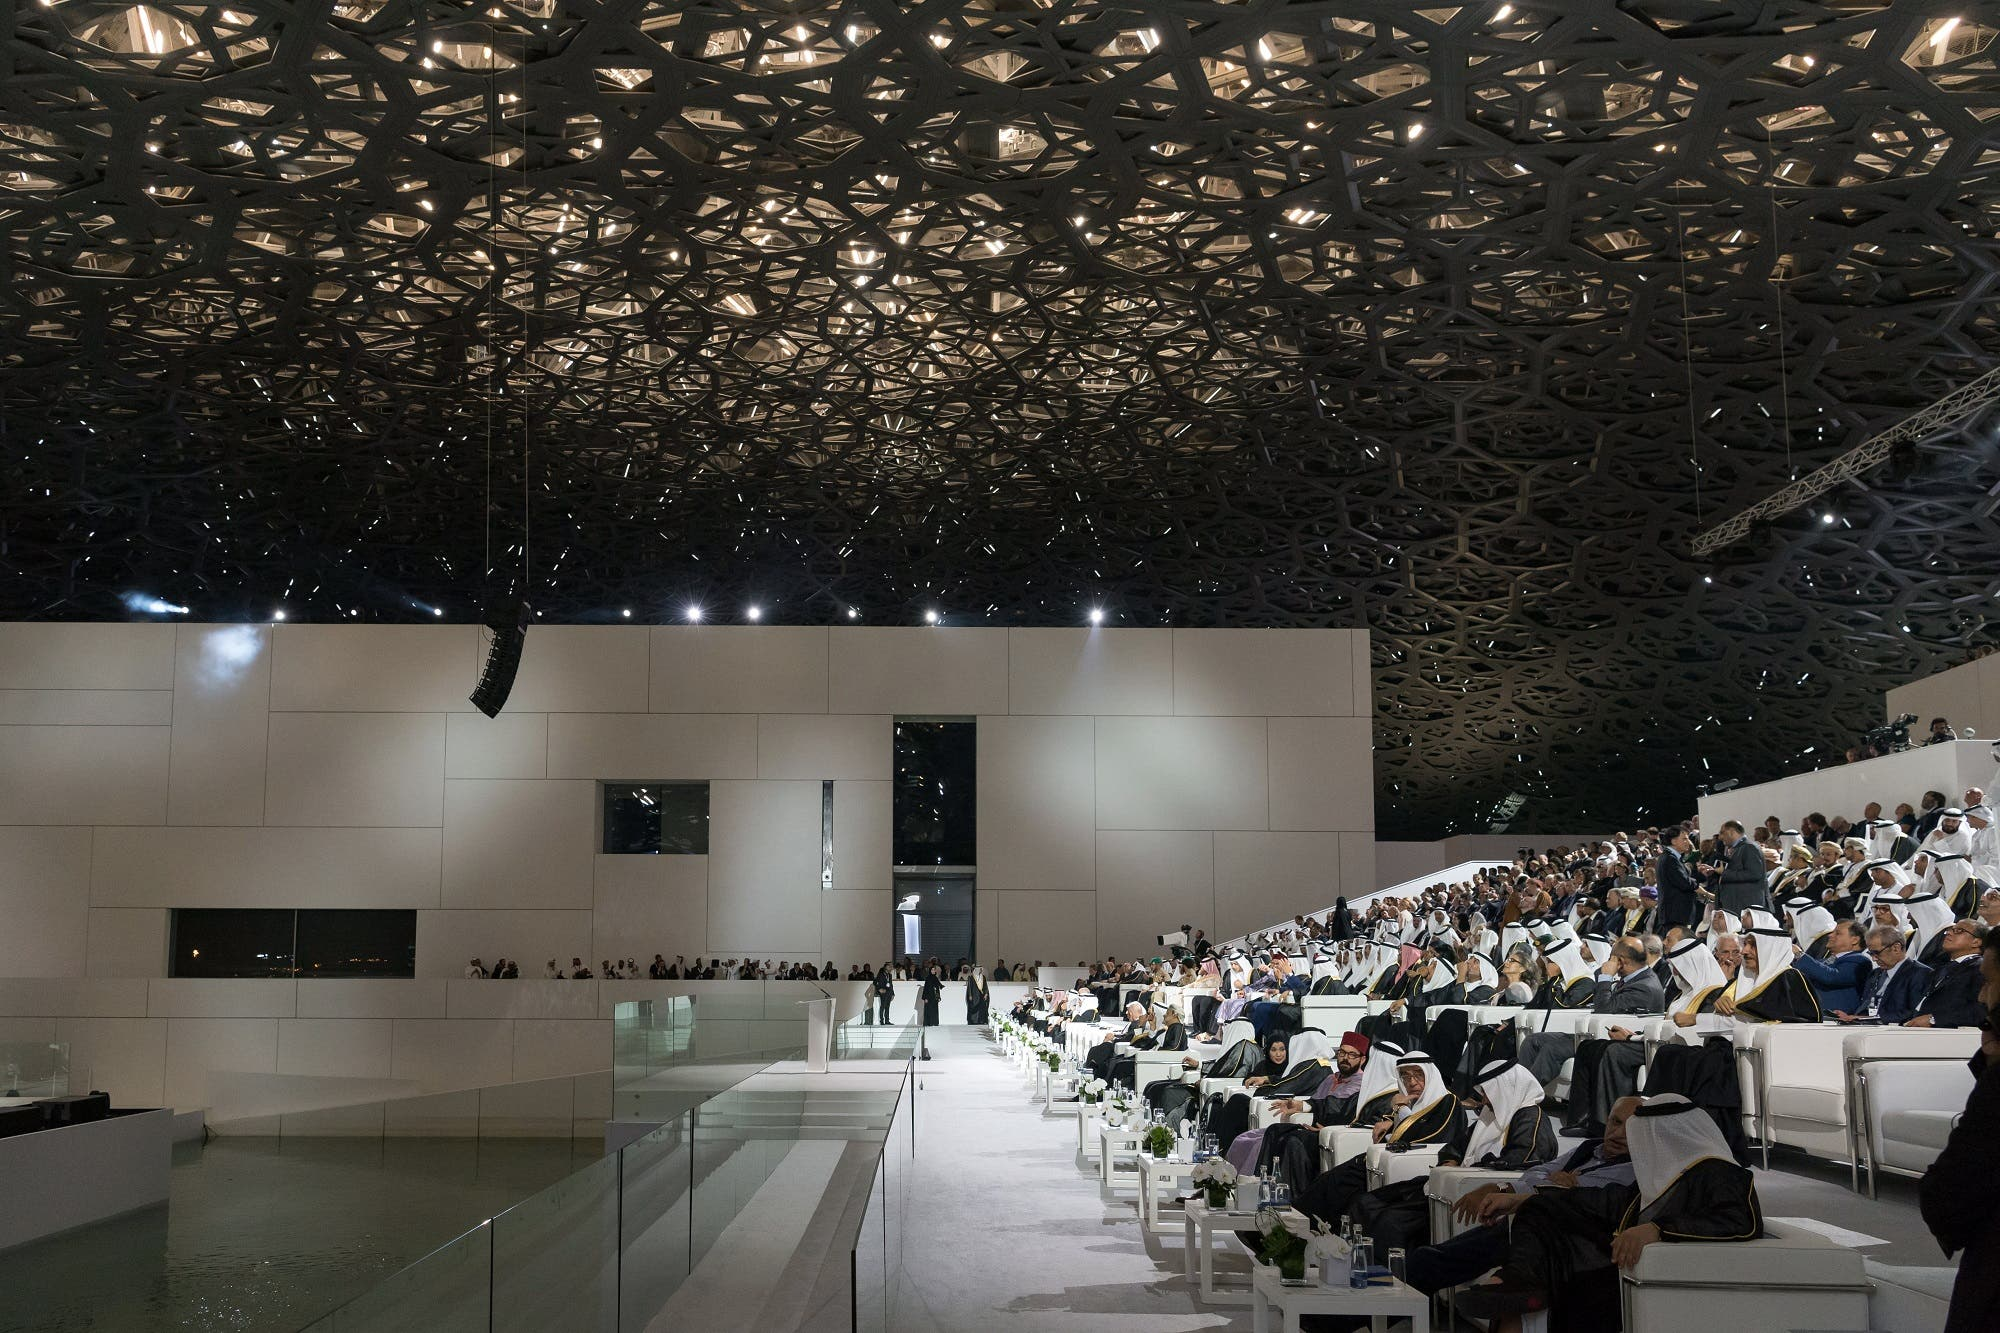 Louvre Abu Dhabi aims to redefine the traditional museum experience. (Supplied)